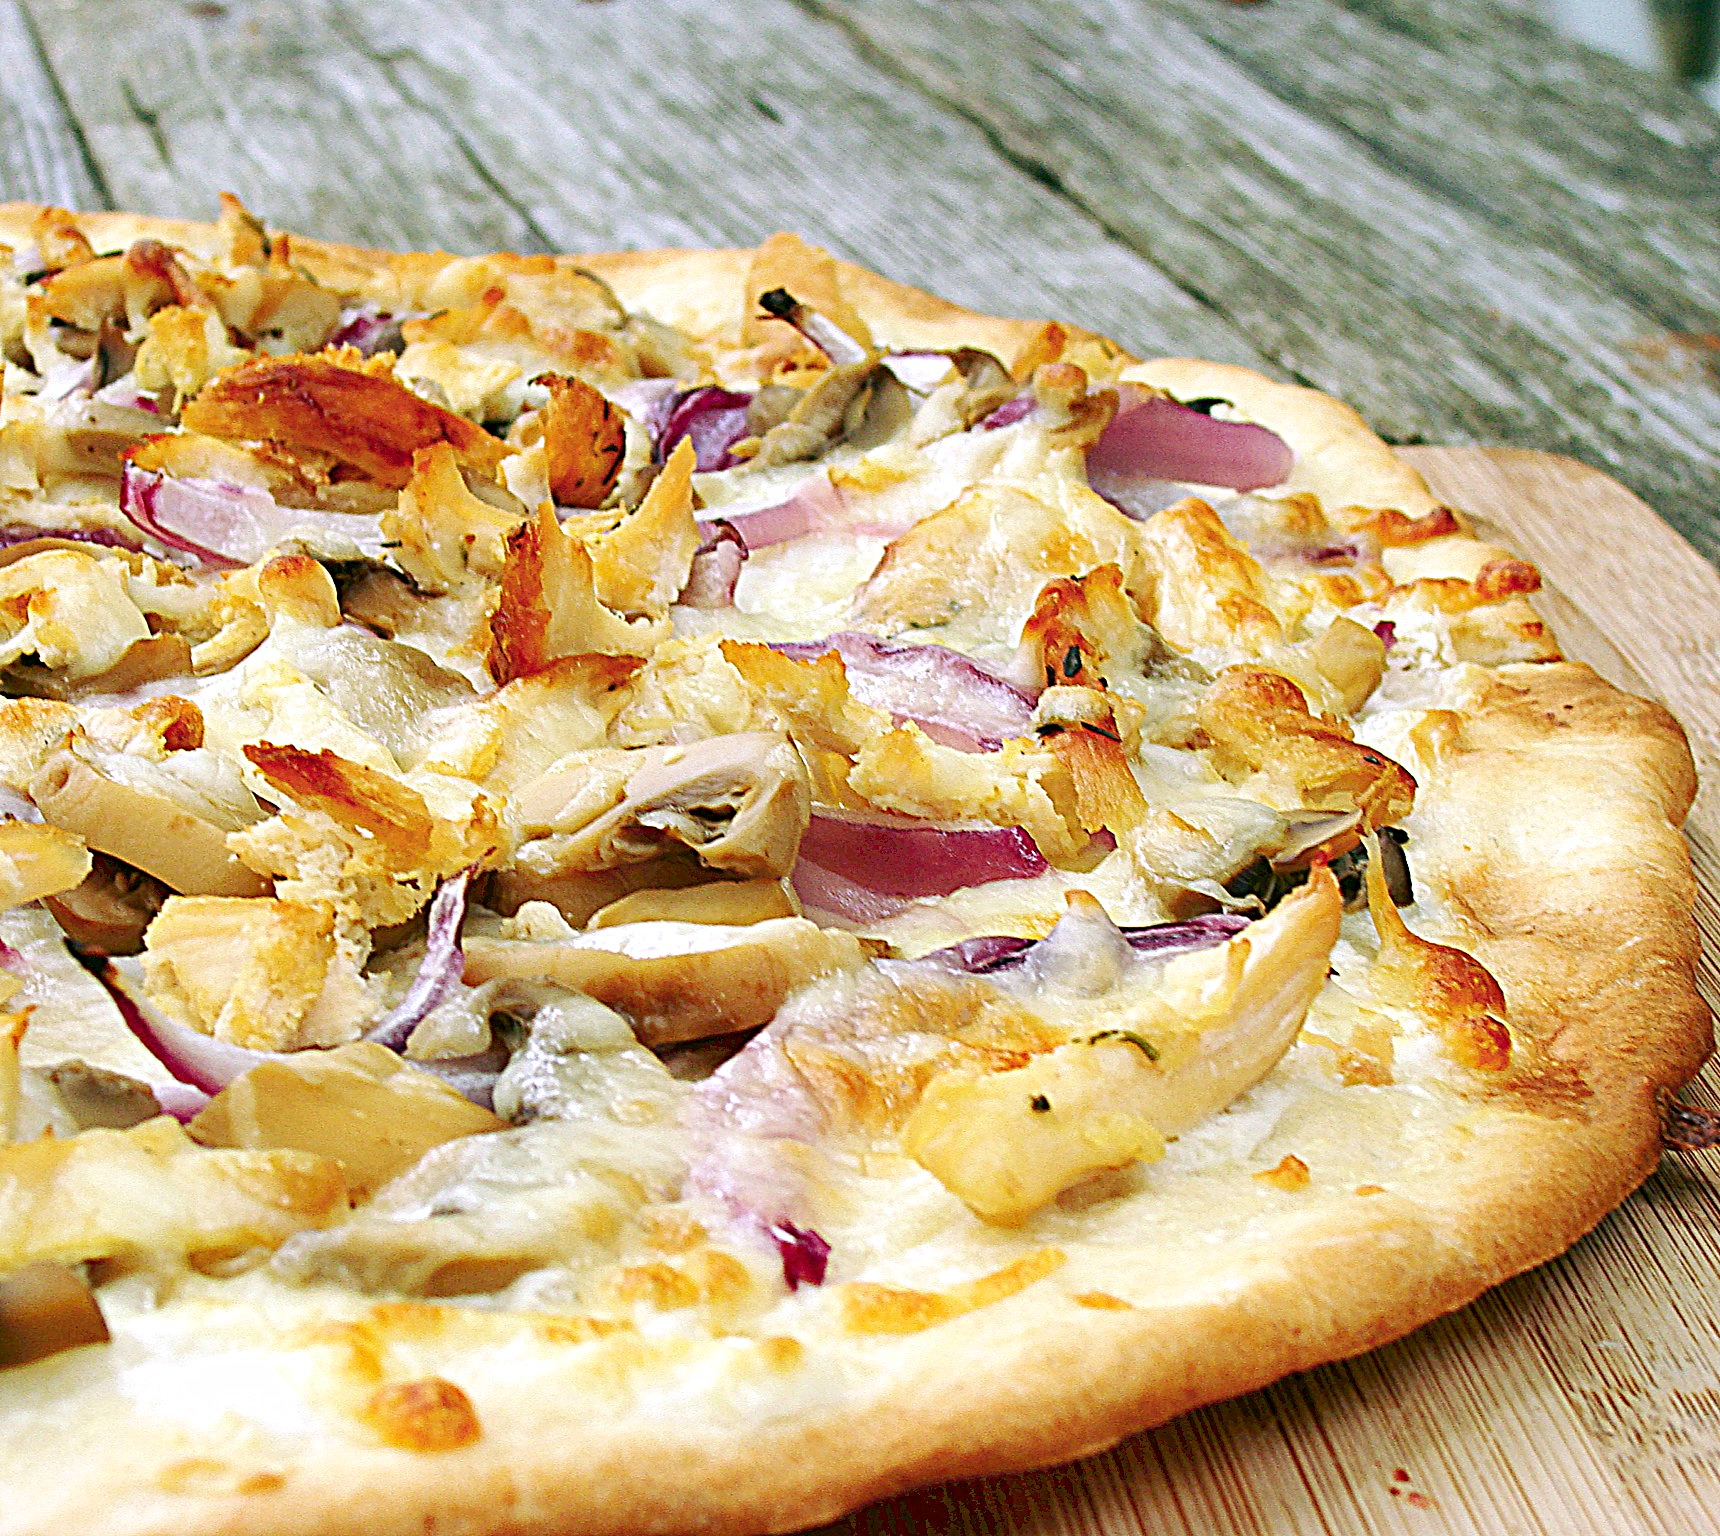 Grilled Pizza: Chicken, Red Onions, and Cream Cheese